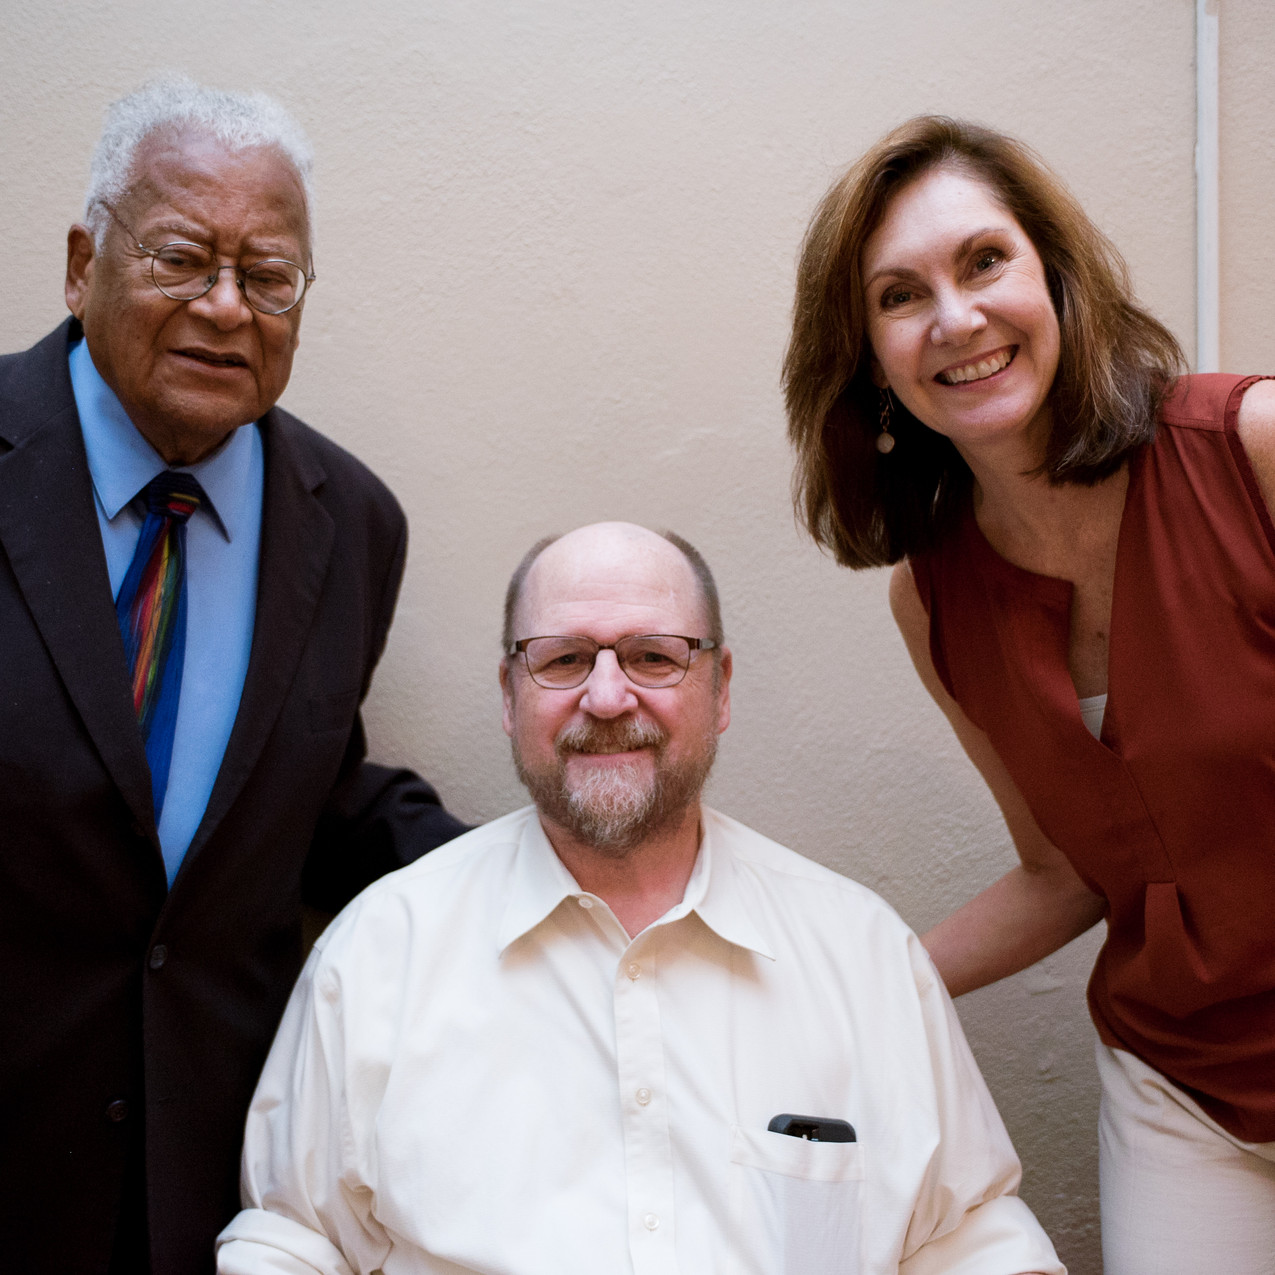 James Lawson, Jeff Irwin, and Amy